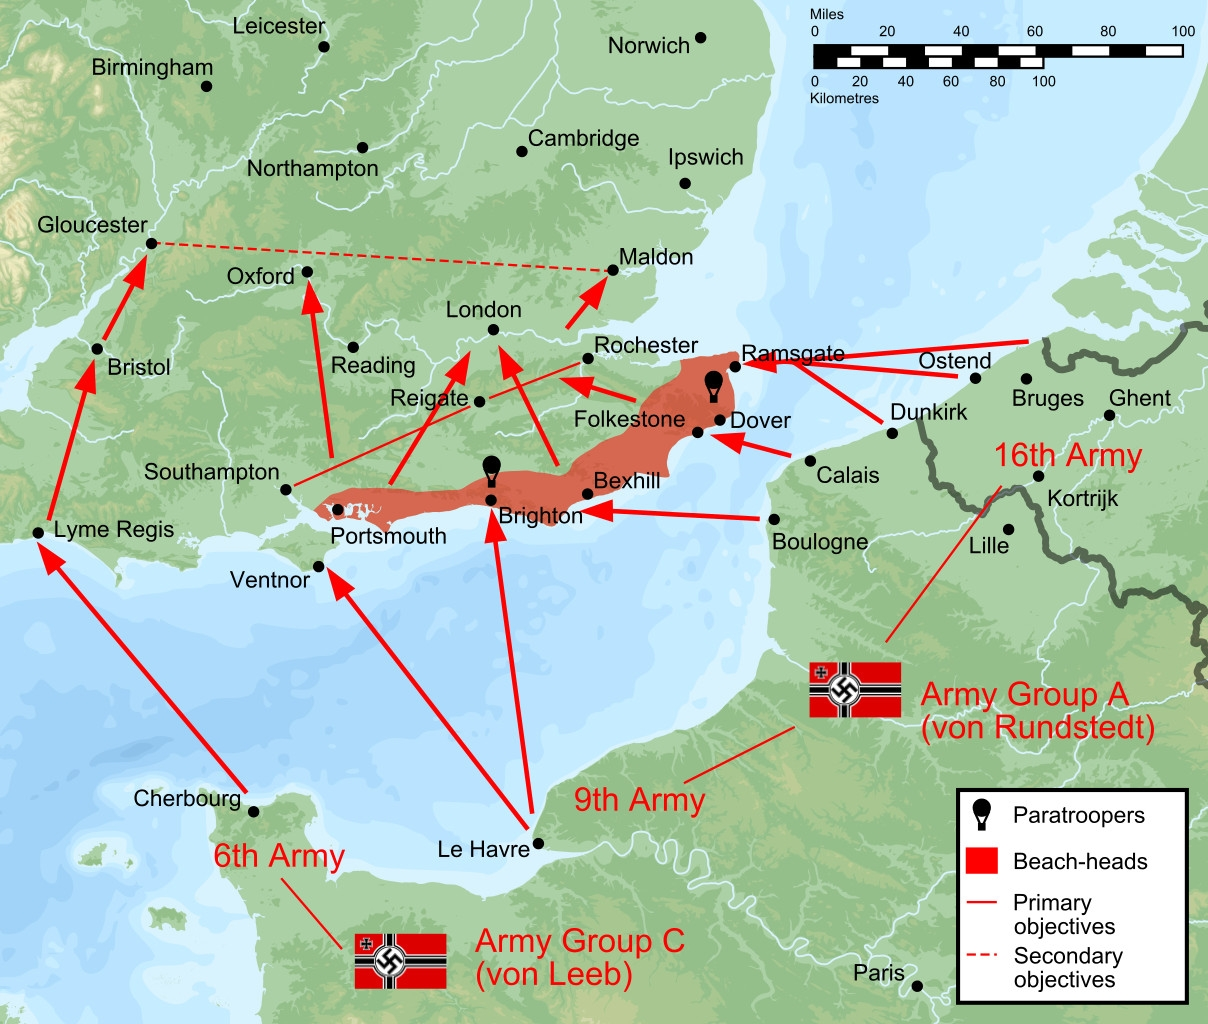 42 Maps That Explain World War Ii - Vox throughout Map Of Germany Pre Ww2